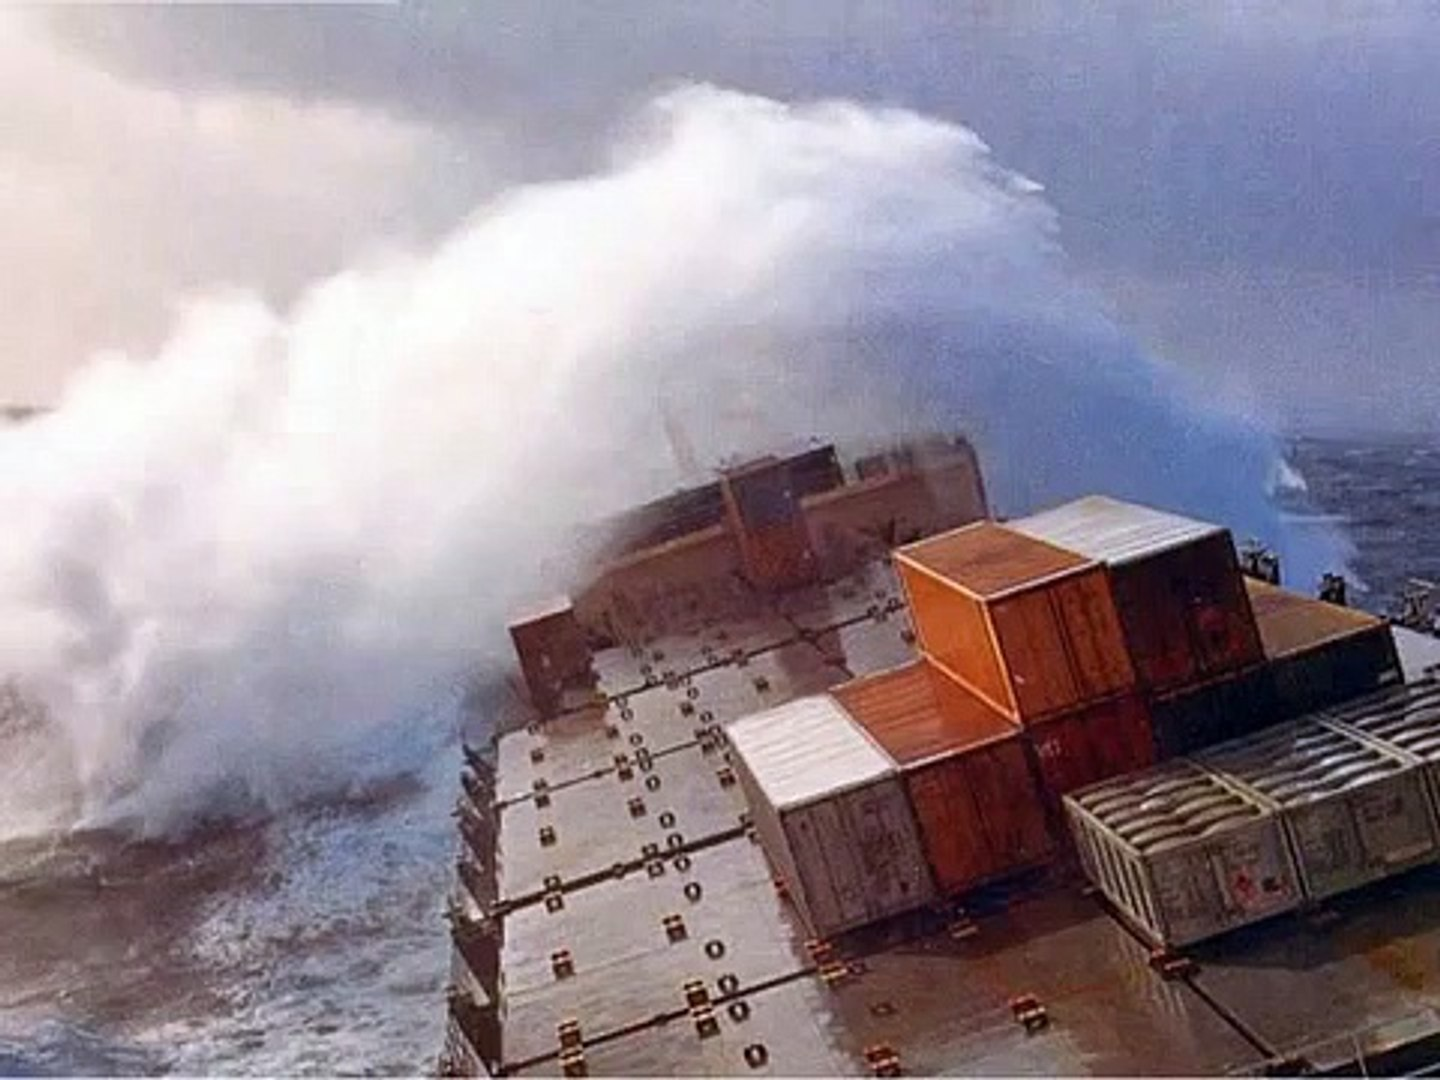 Cargo Ships In Rough Seas